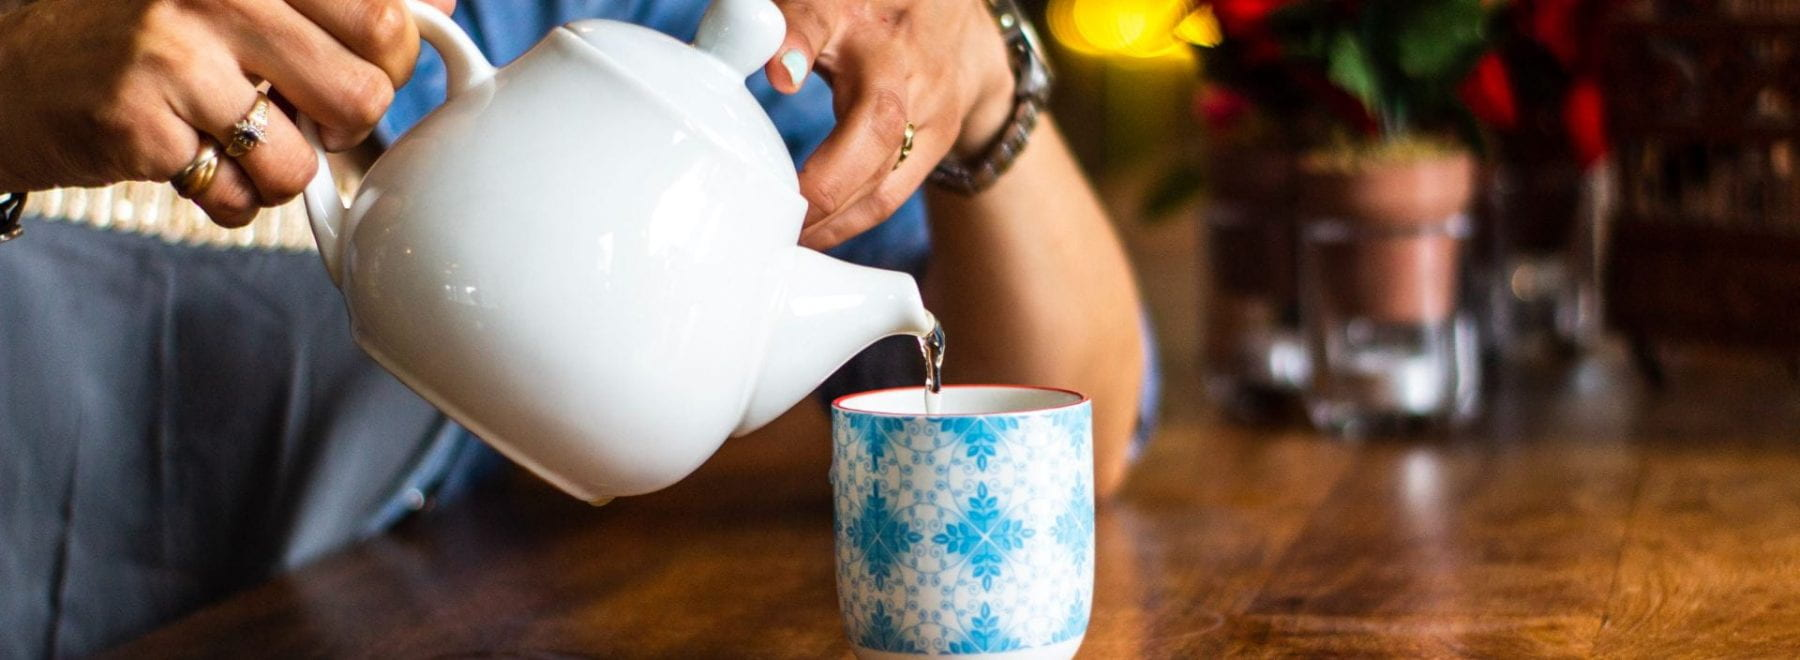 A lady pouring tea from a teapot into a mug